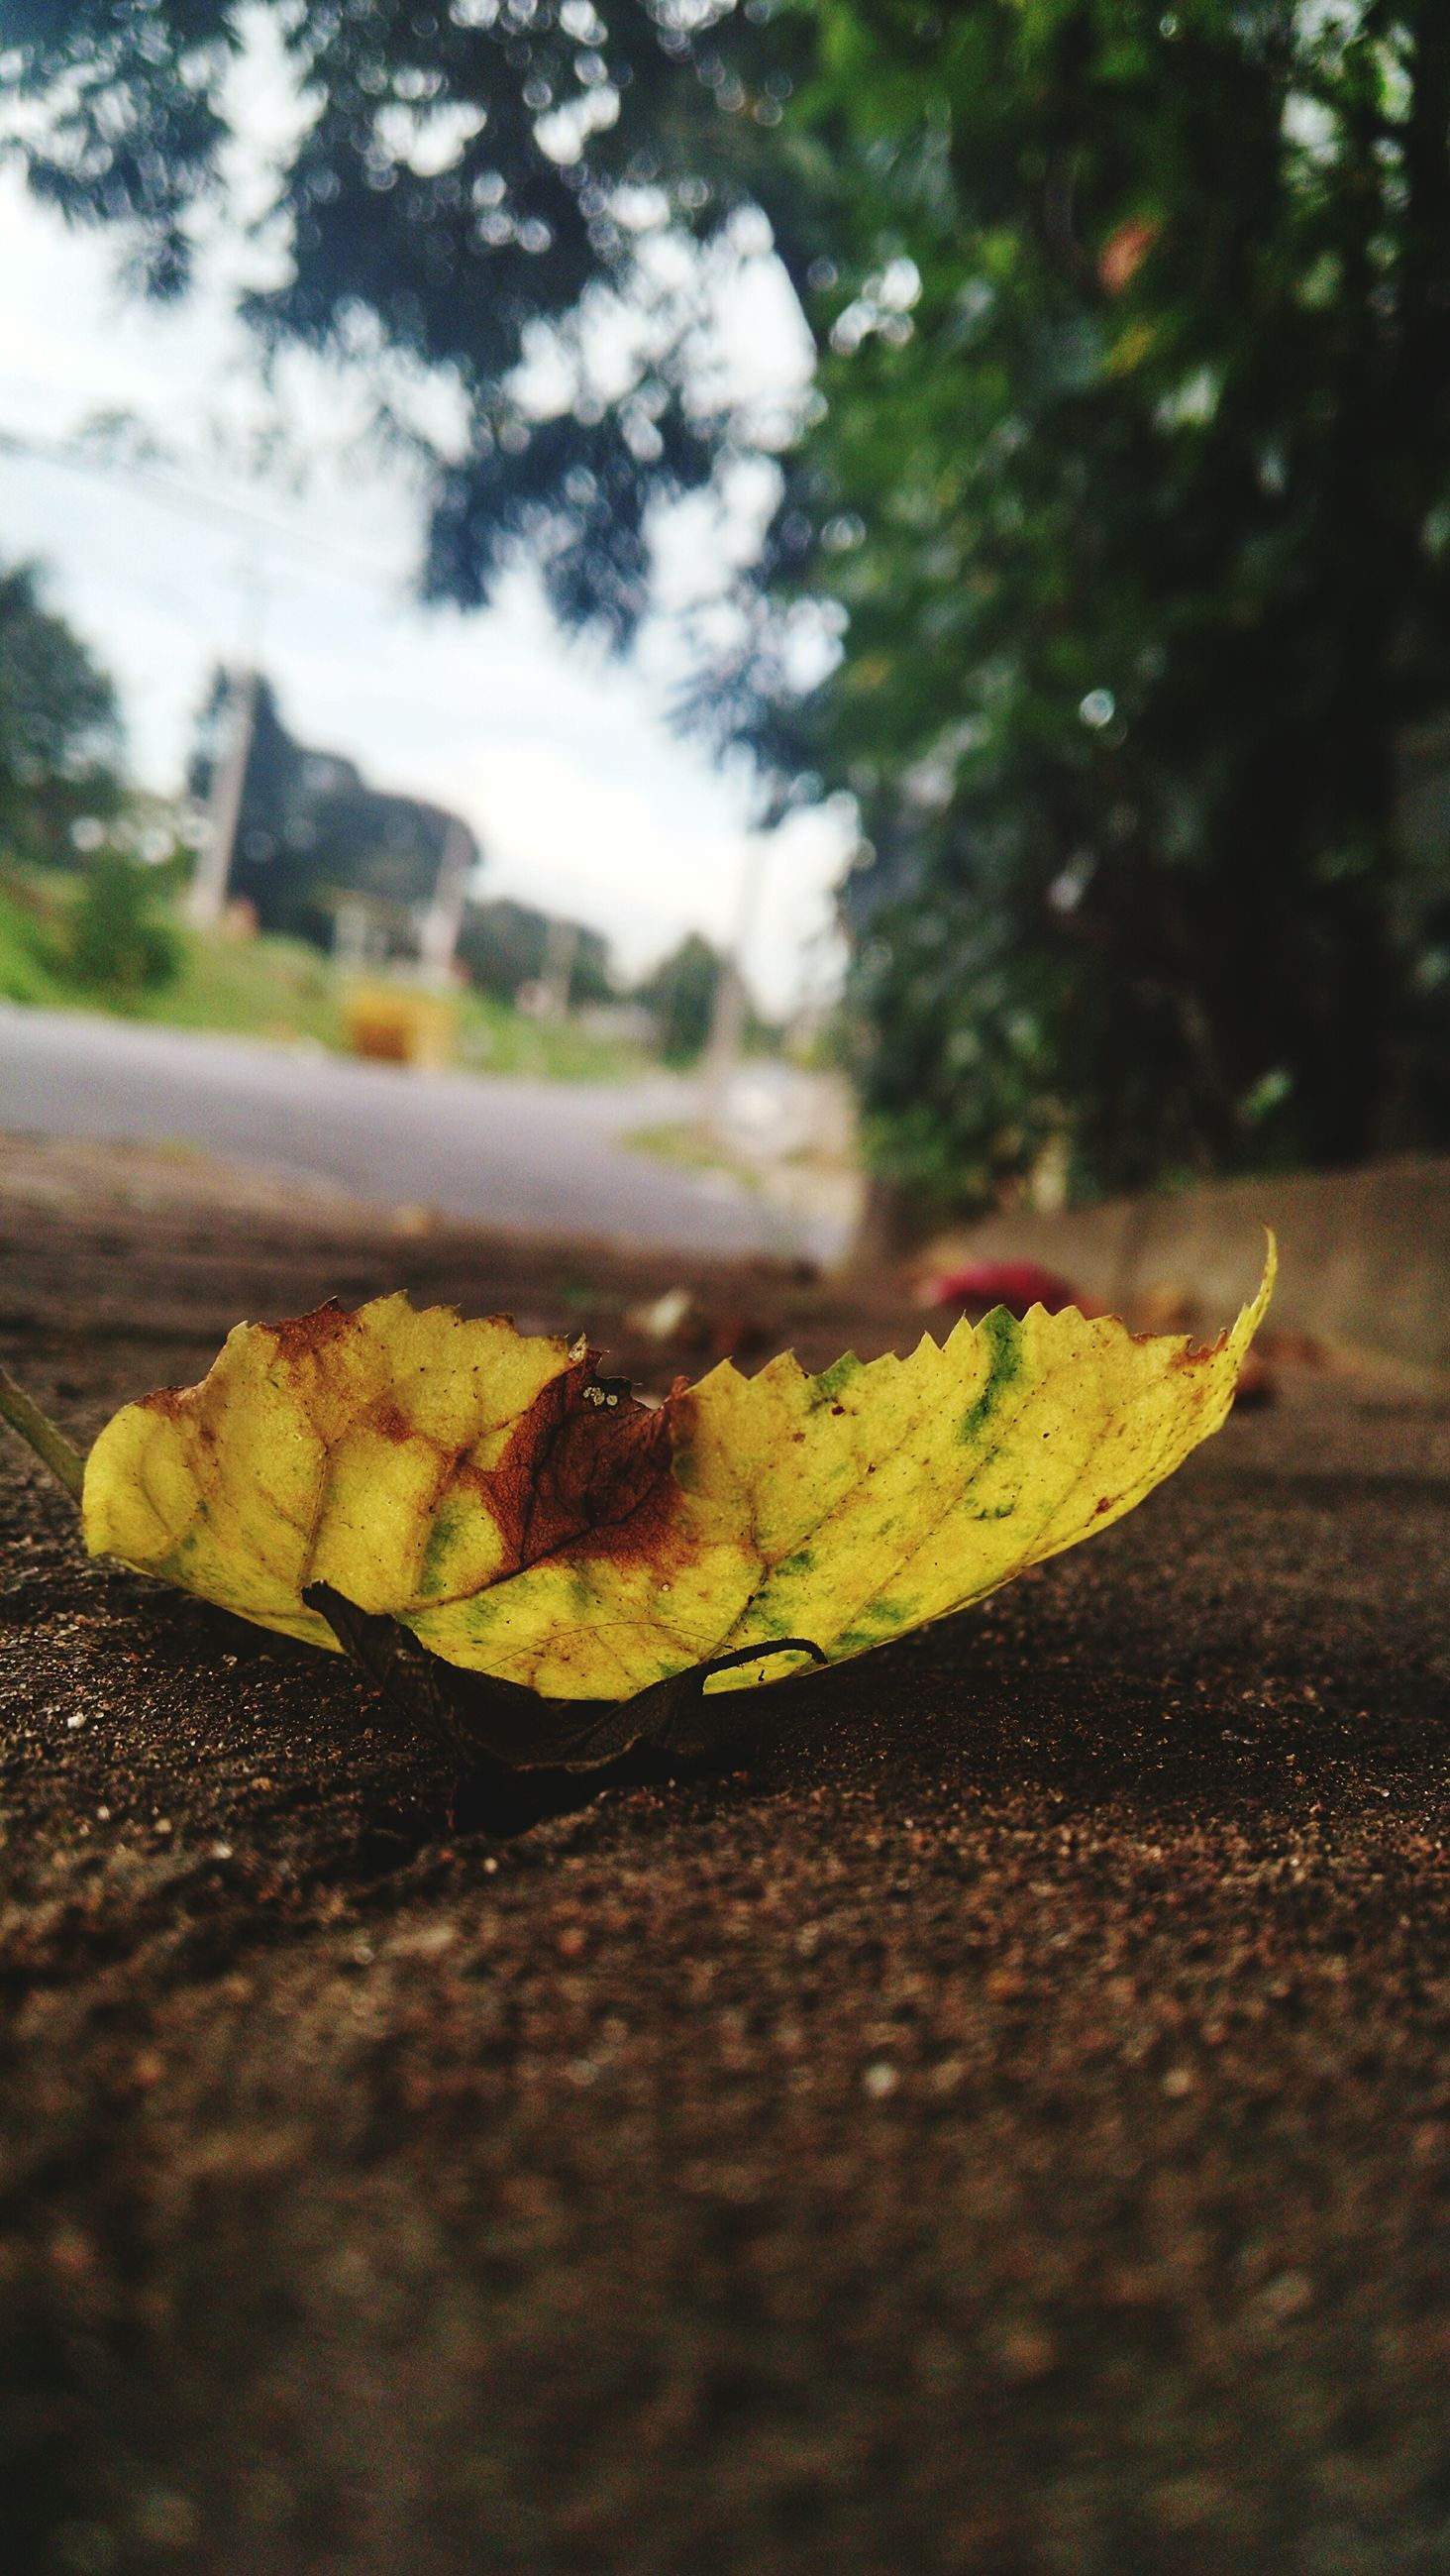 selective focus, leaf, yellow, focus on foreground, surface level, close-up, autumn, street, outdoors, leaves, no people, day, change, nature, fallen, sunlight, road, dry, food, food and drink